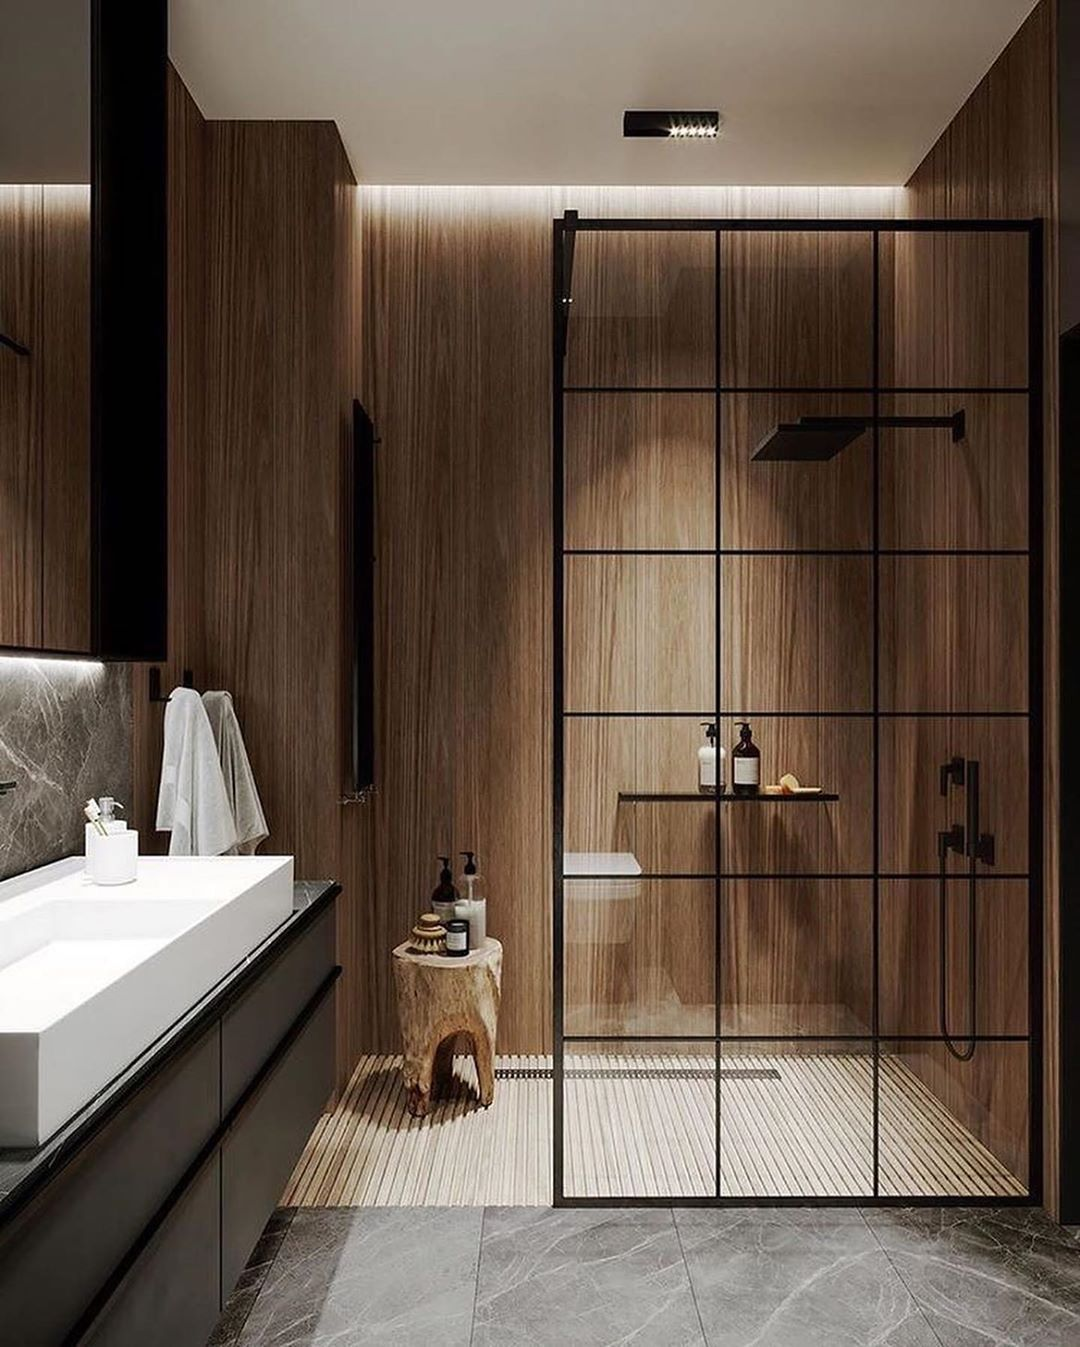 Design Interior Homes On Instagram Via Designinterior4homes What Do You Think About This A In 2020 Modern Bathroom Design Bathroom Design Bathroom Interior Design